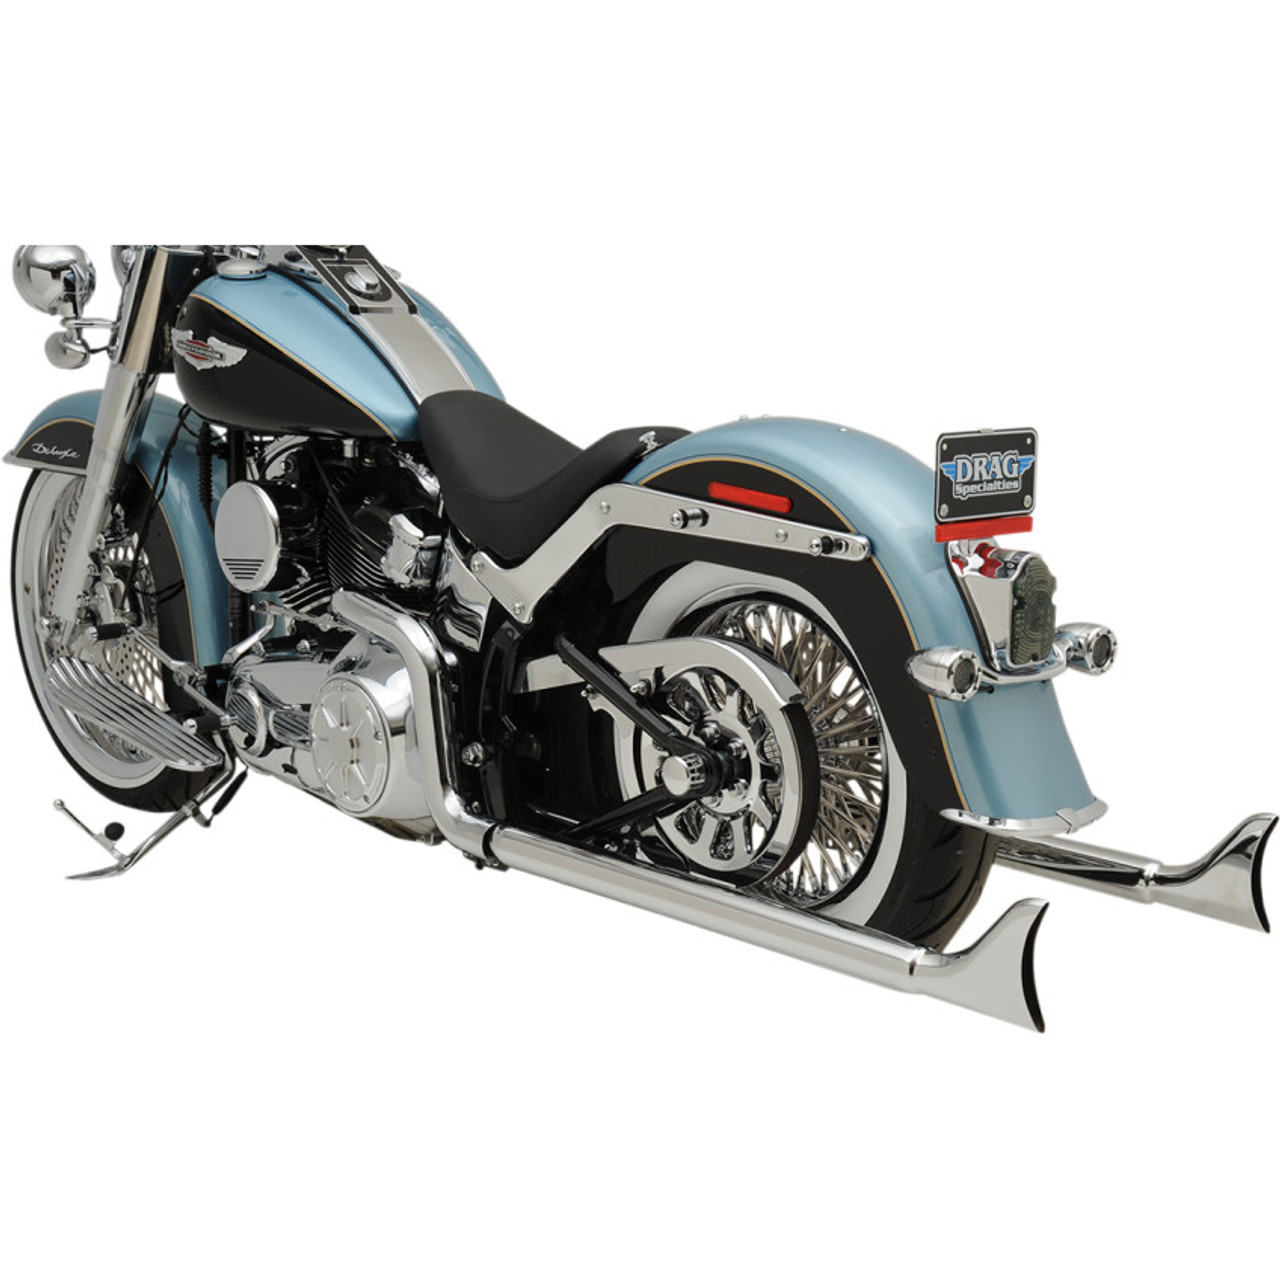 Bassani Chrome 36 True Duals Exhaust With 2 25 Fishtail Mufflers For 2007 2017 Harley Softail No Baffles 1s46e 36 Get Lowered Cycles